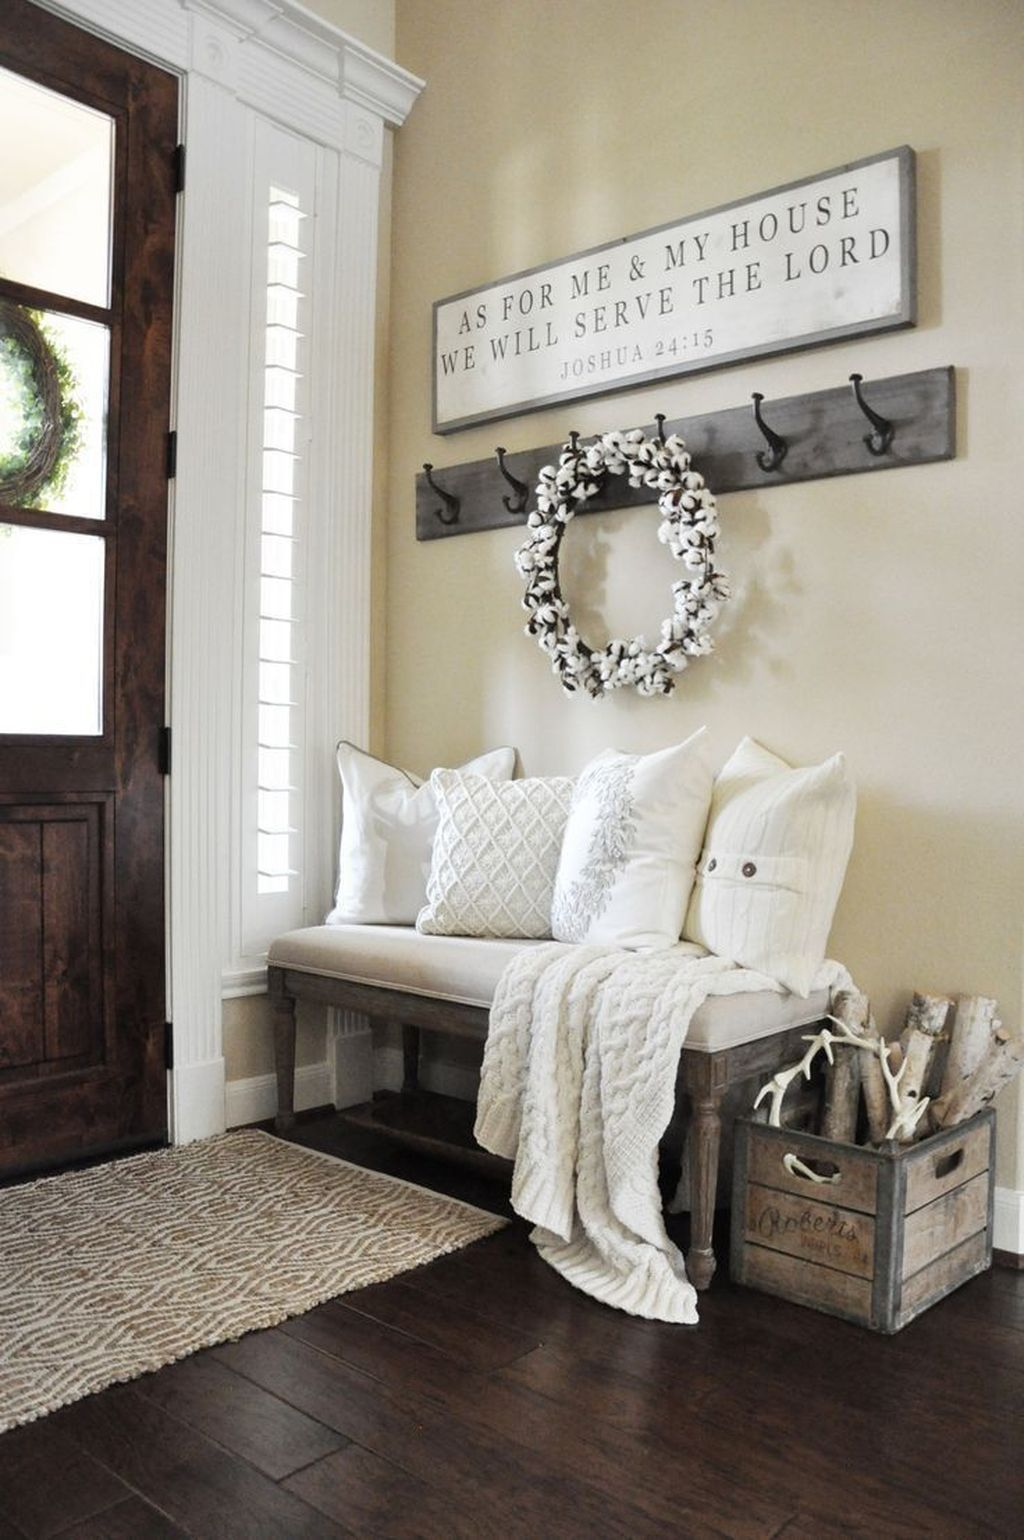 46 Fabulous Winter Home Decor Ideas You Should Copy Now #decorationentree